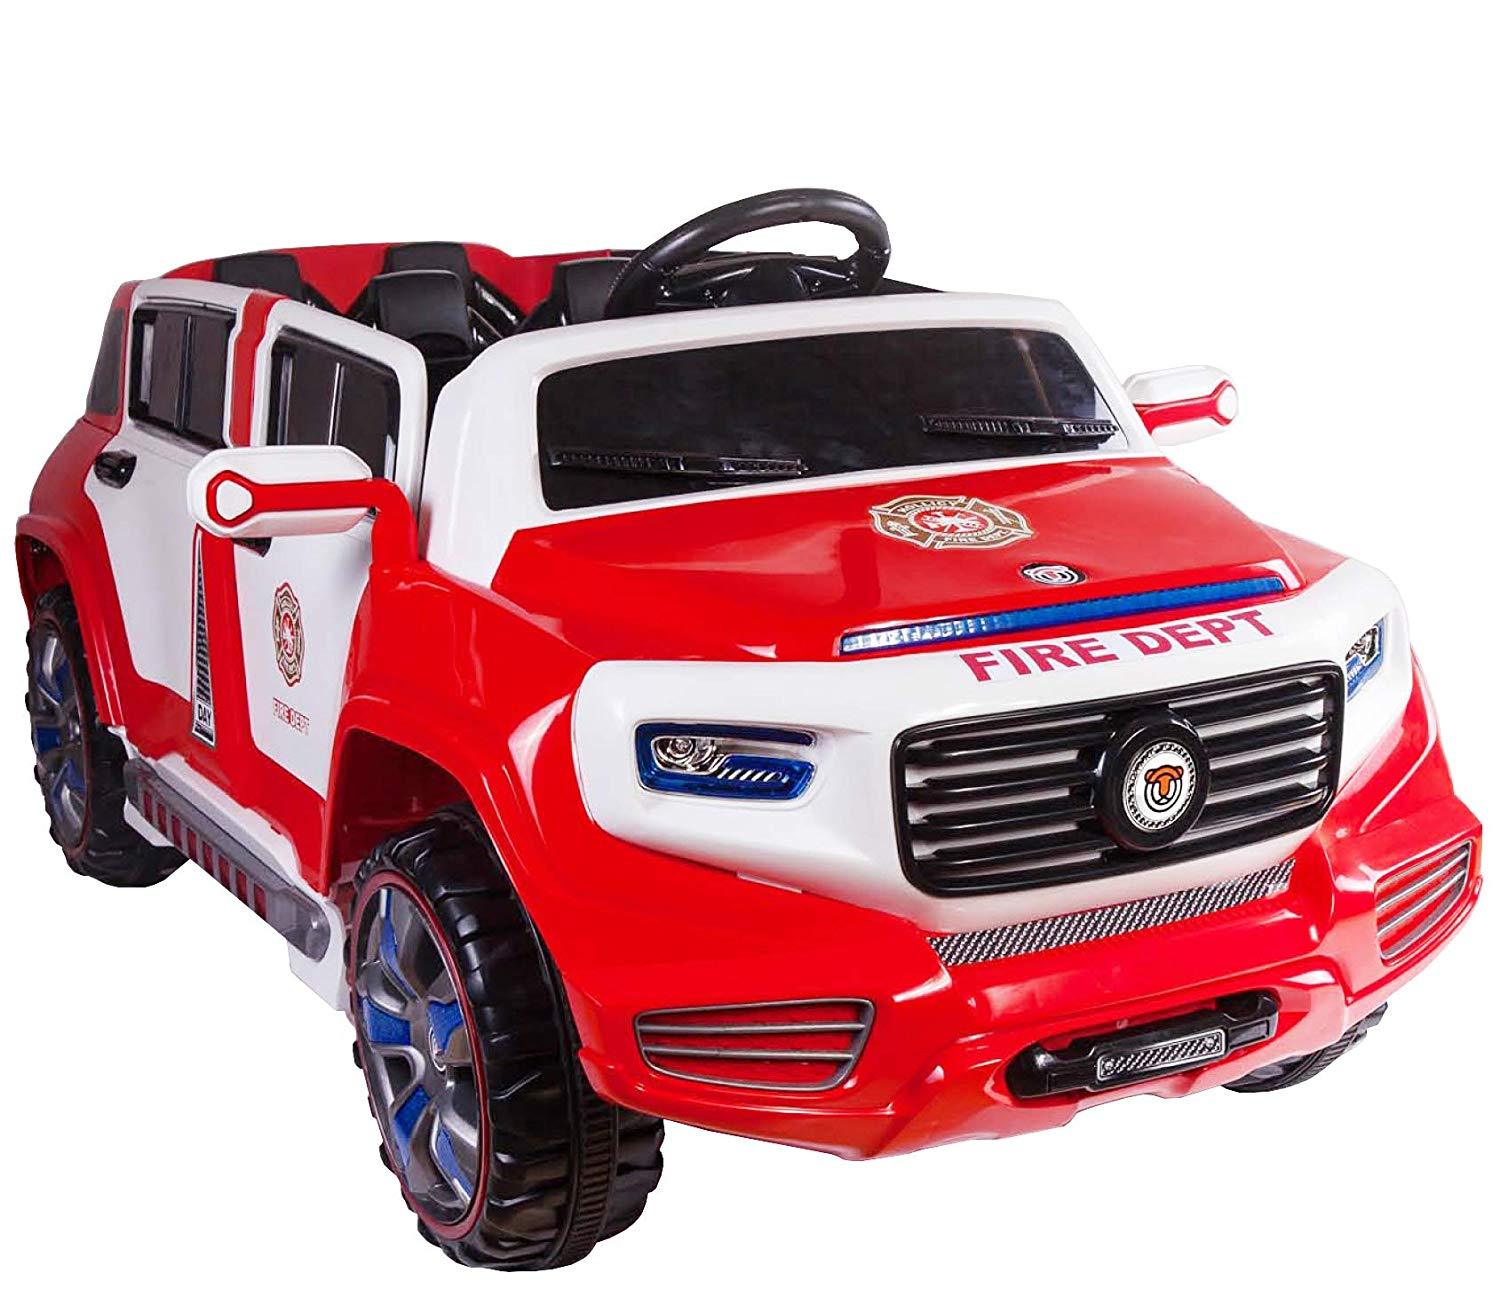 Car For Kids >> 4 Door Ride On Two Seater Fire Truck Electric Toy Car For Kids 12v Battery Powered Led Lights Mp3 Rc Parental Remote Controller Suitable For Boys